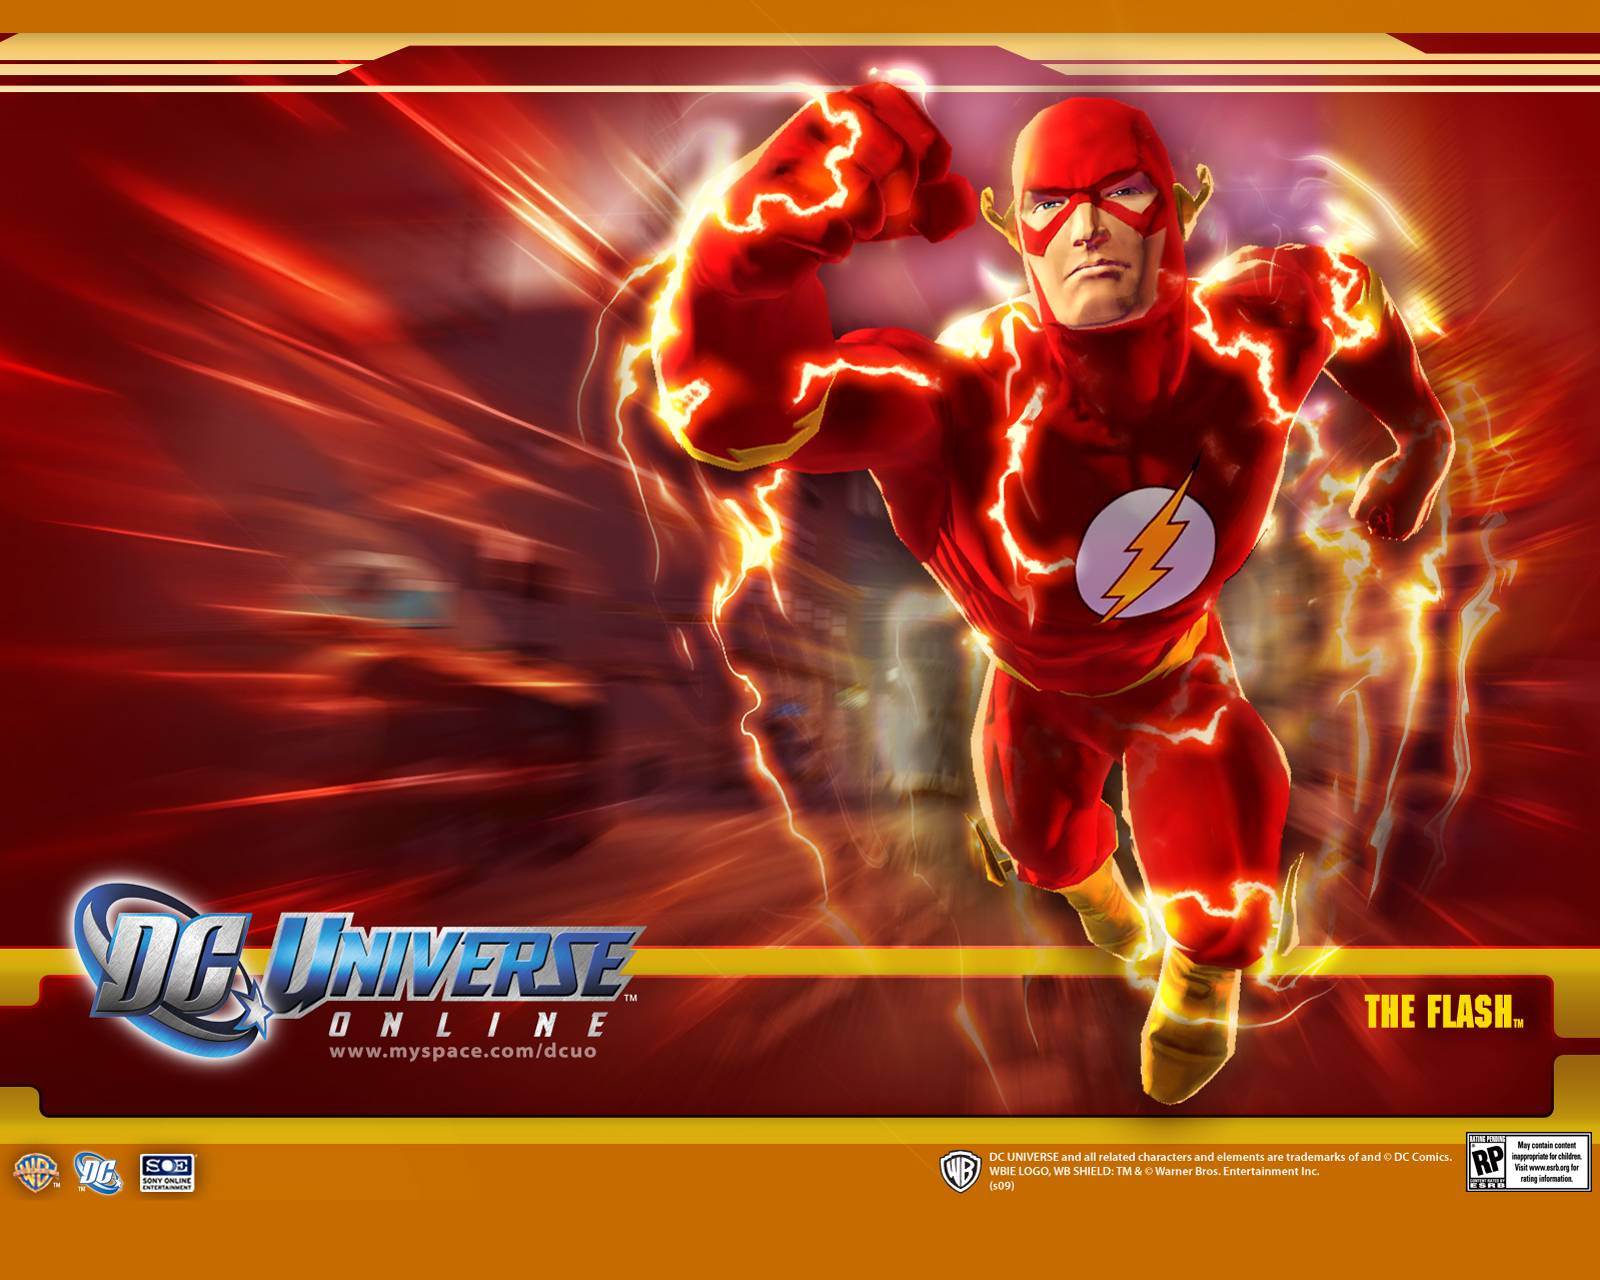 The Flash Superhero Game Online